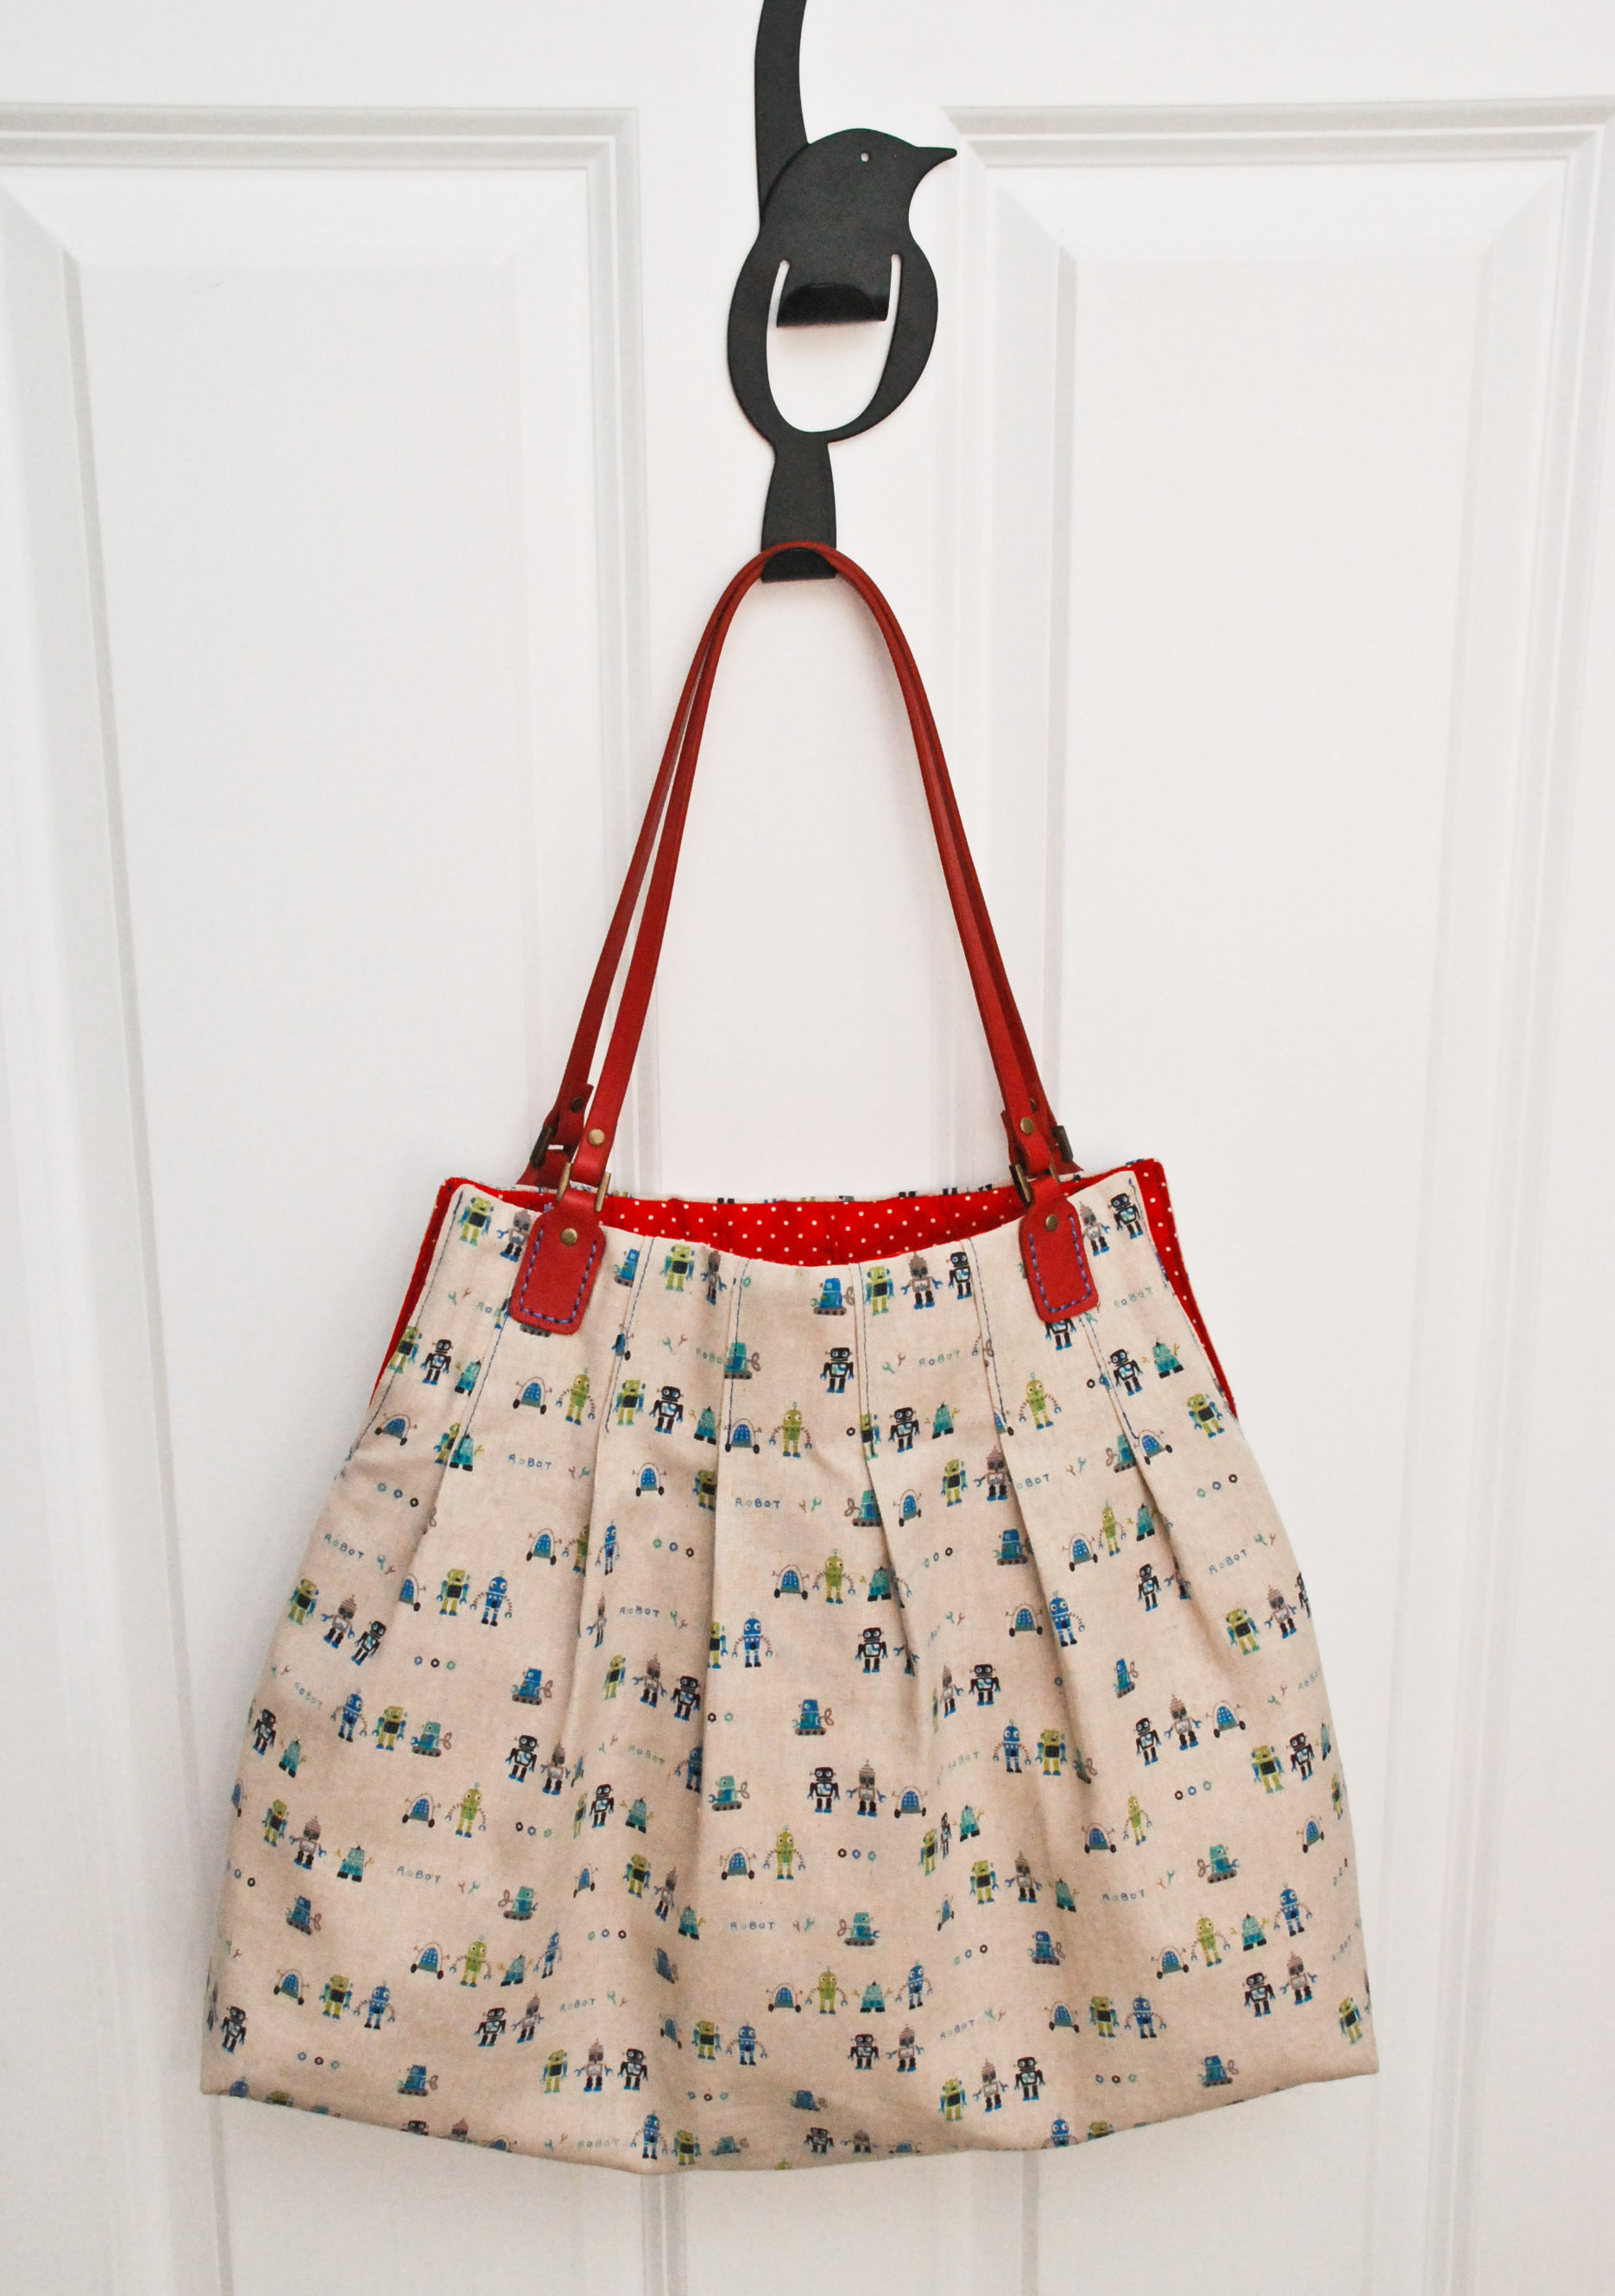 Free Bag Purse Pattern For Pleat S